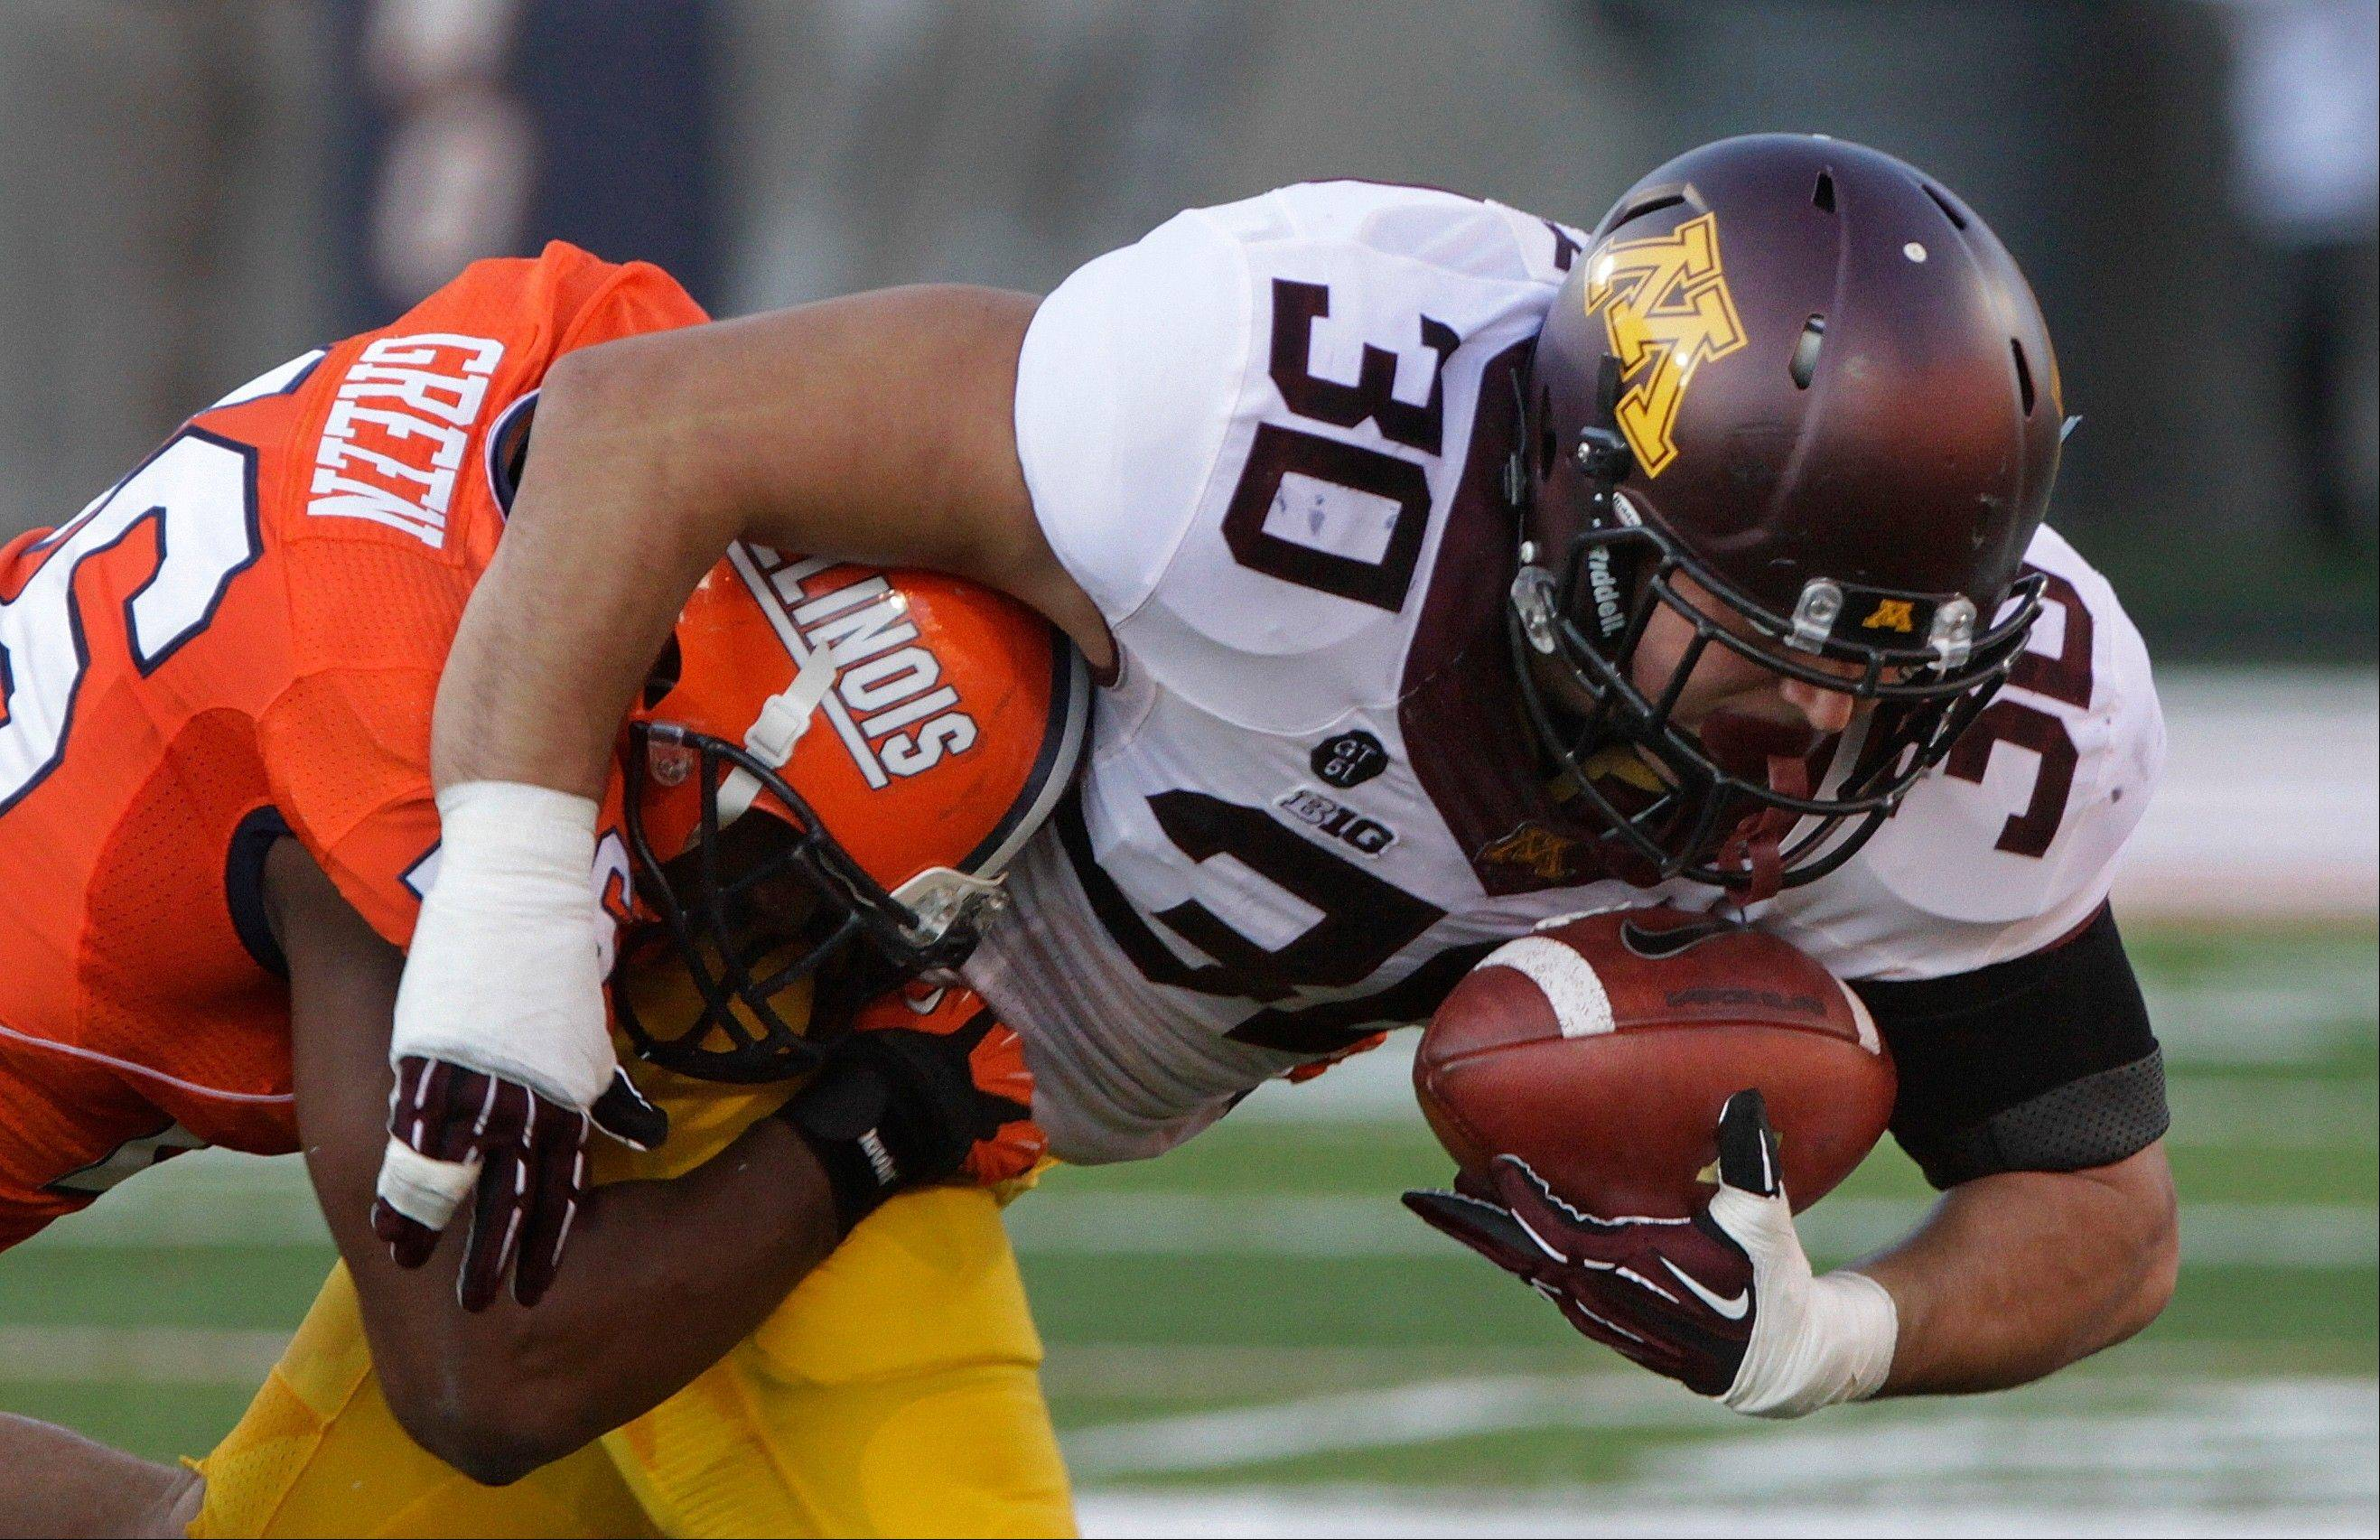 Minnesota fullback Mike Henry holds on to the ball near Illinois defensive back Justin Green Saturday during the first half in Champaign.